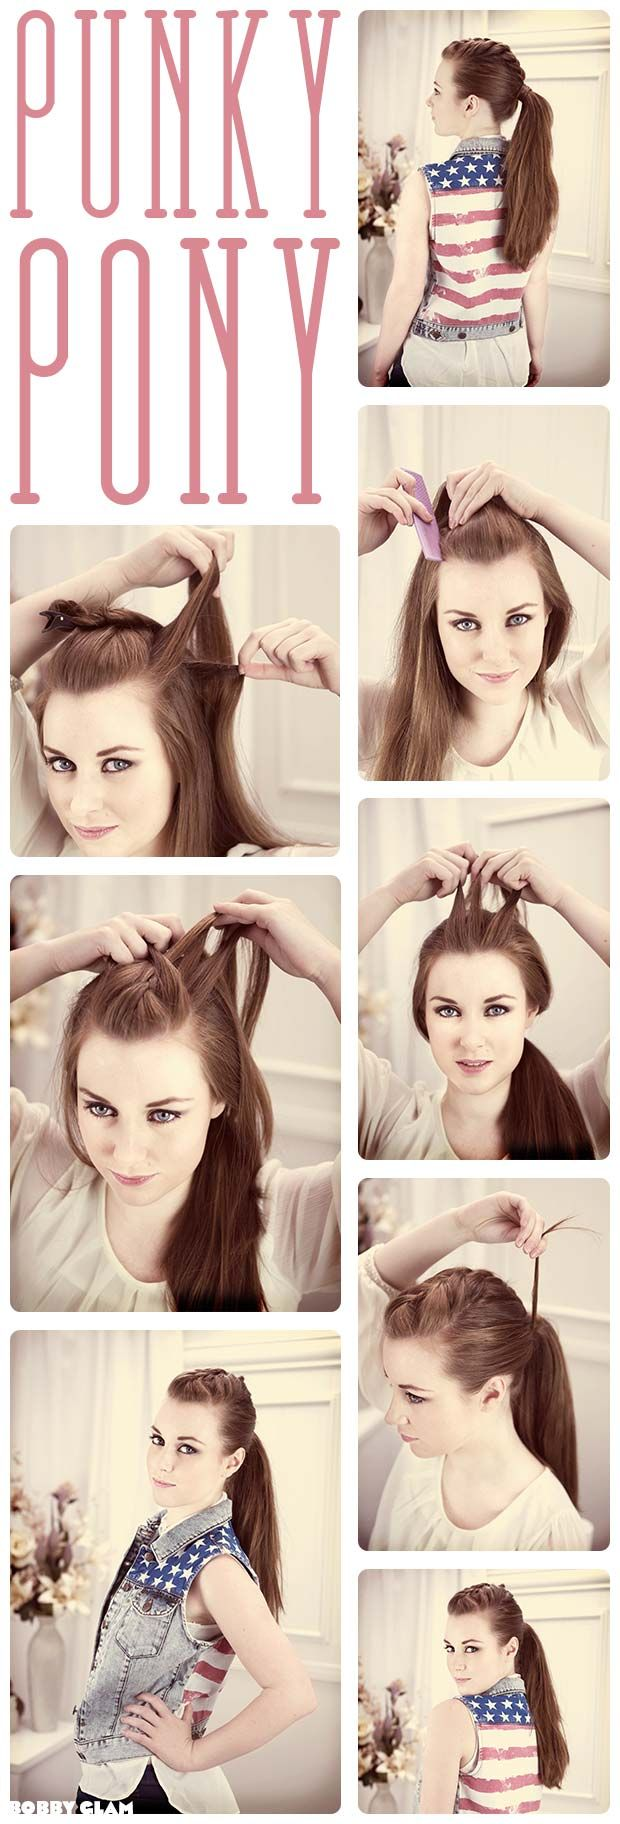 French Braid Ponytail TUTORIAL @Lindsay Dillon Dillon Dillon tidei i wonder how this would look.